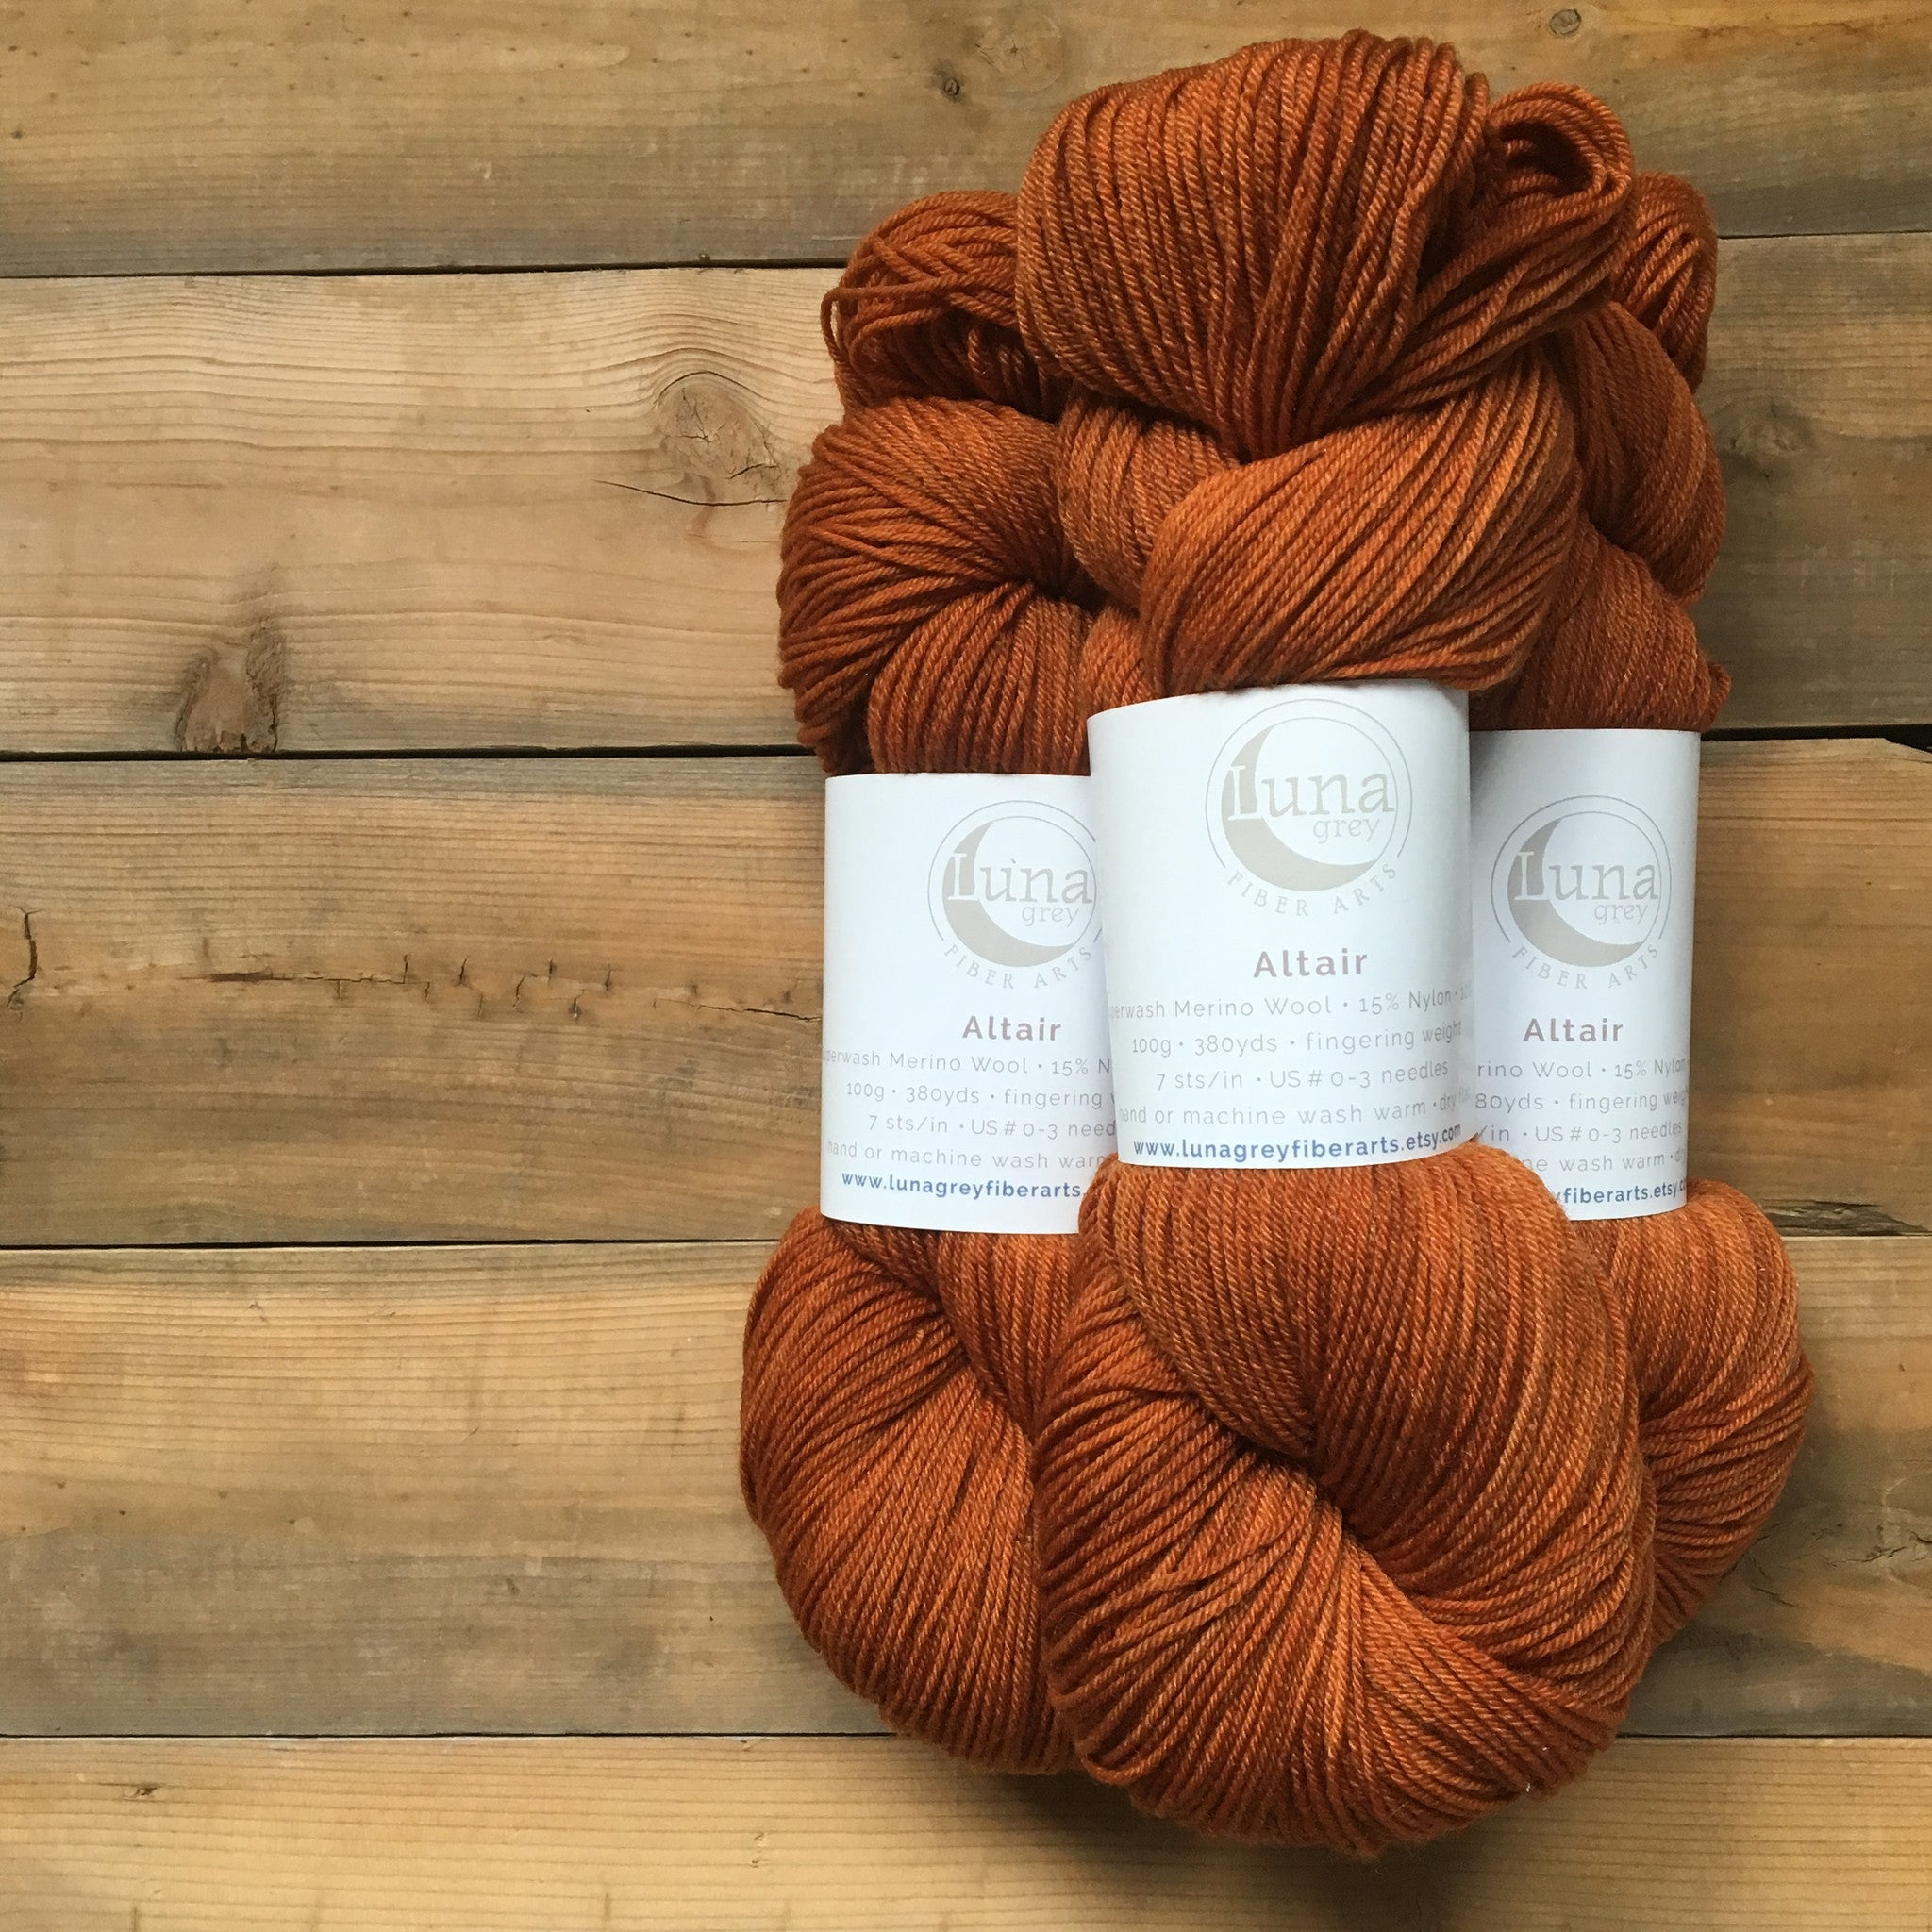 Altair Yarn | Colorway: Spice